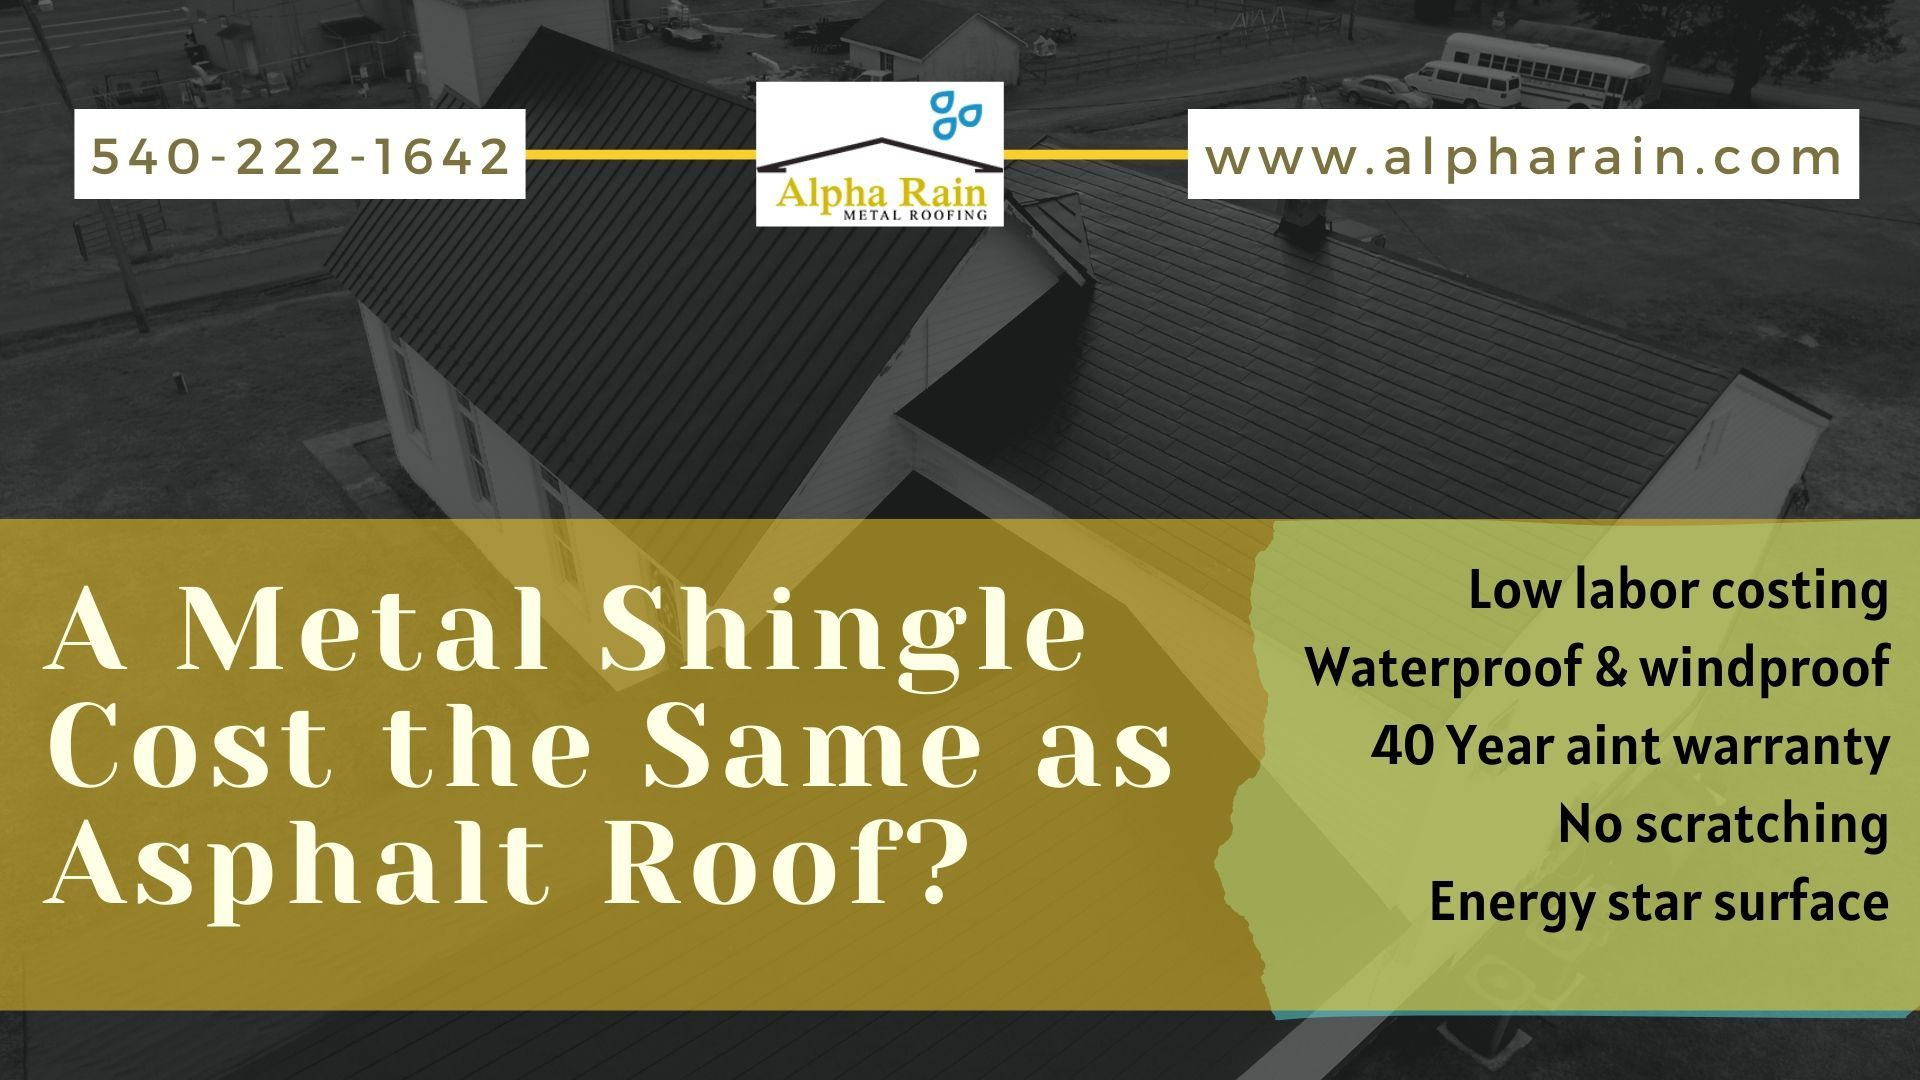 Resonable Metal Shingles Cost Compare With Asphalt Shingle In 2020 Metal Shingles Shingling Asphalt Roof